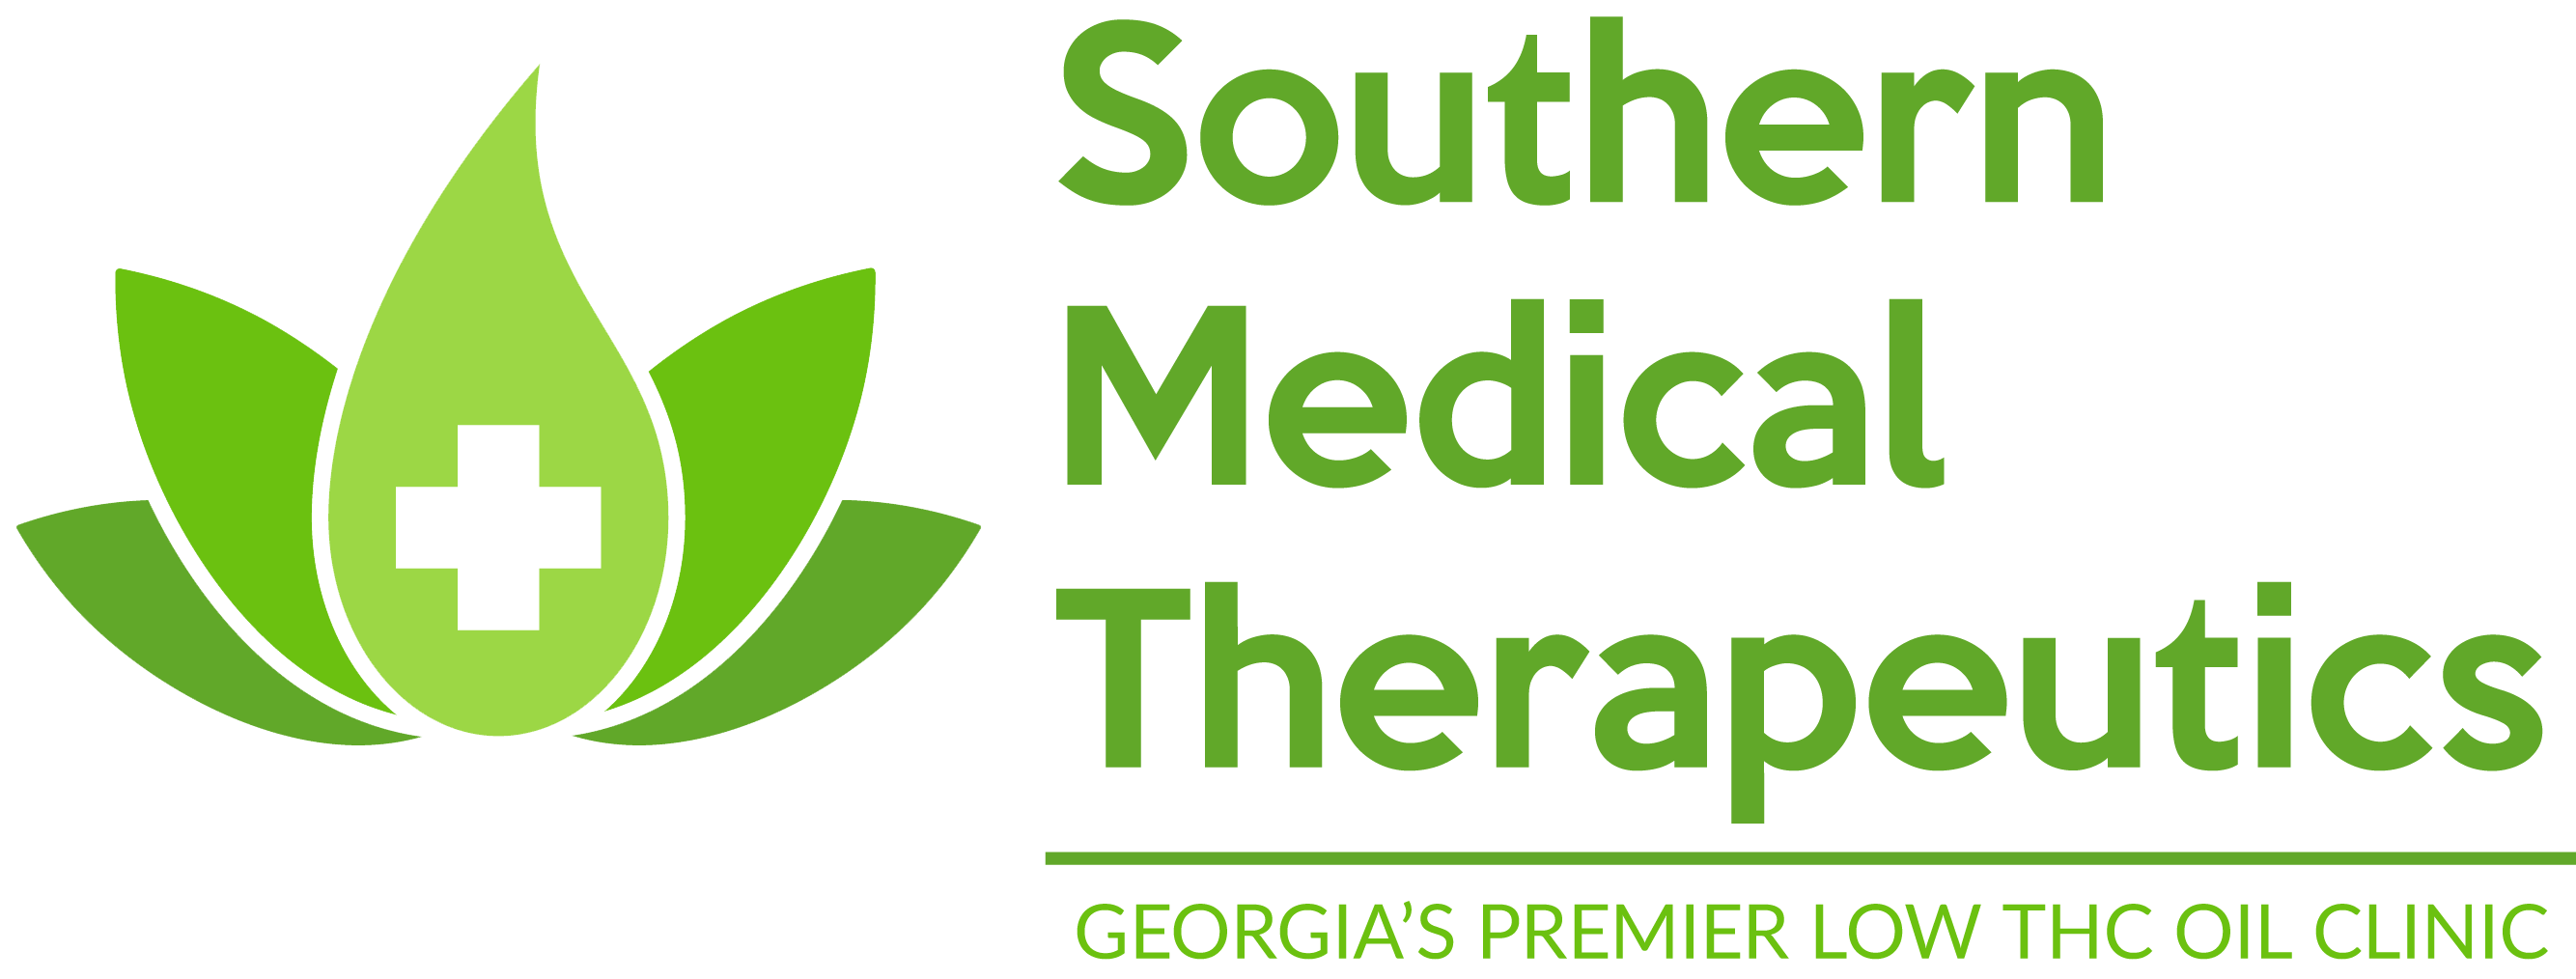 Southern Medical Therapeutics